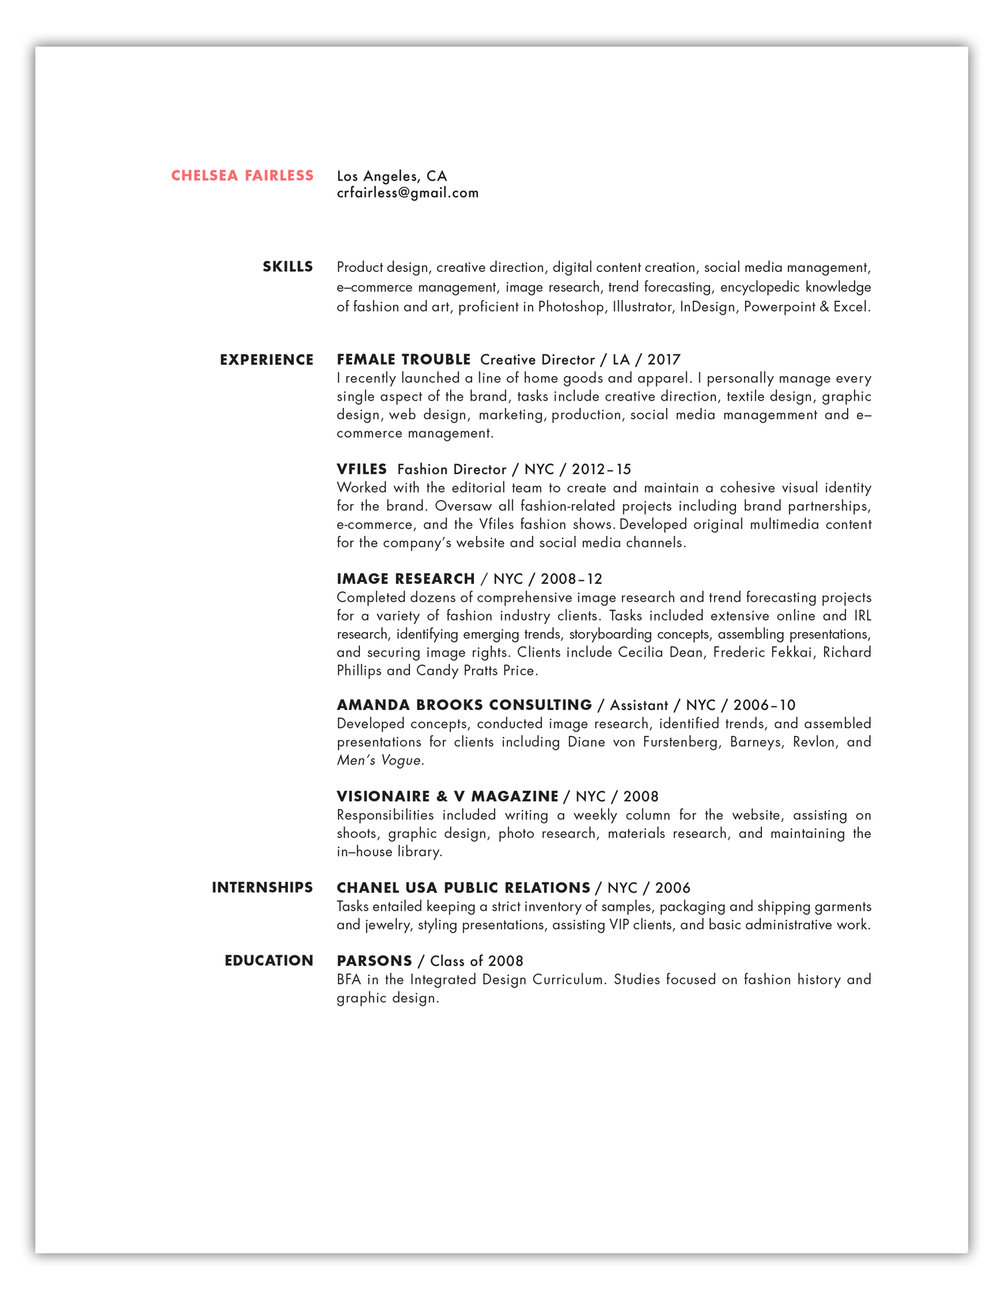 Resume — Chelsea Fairless